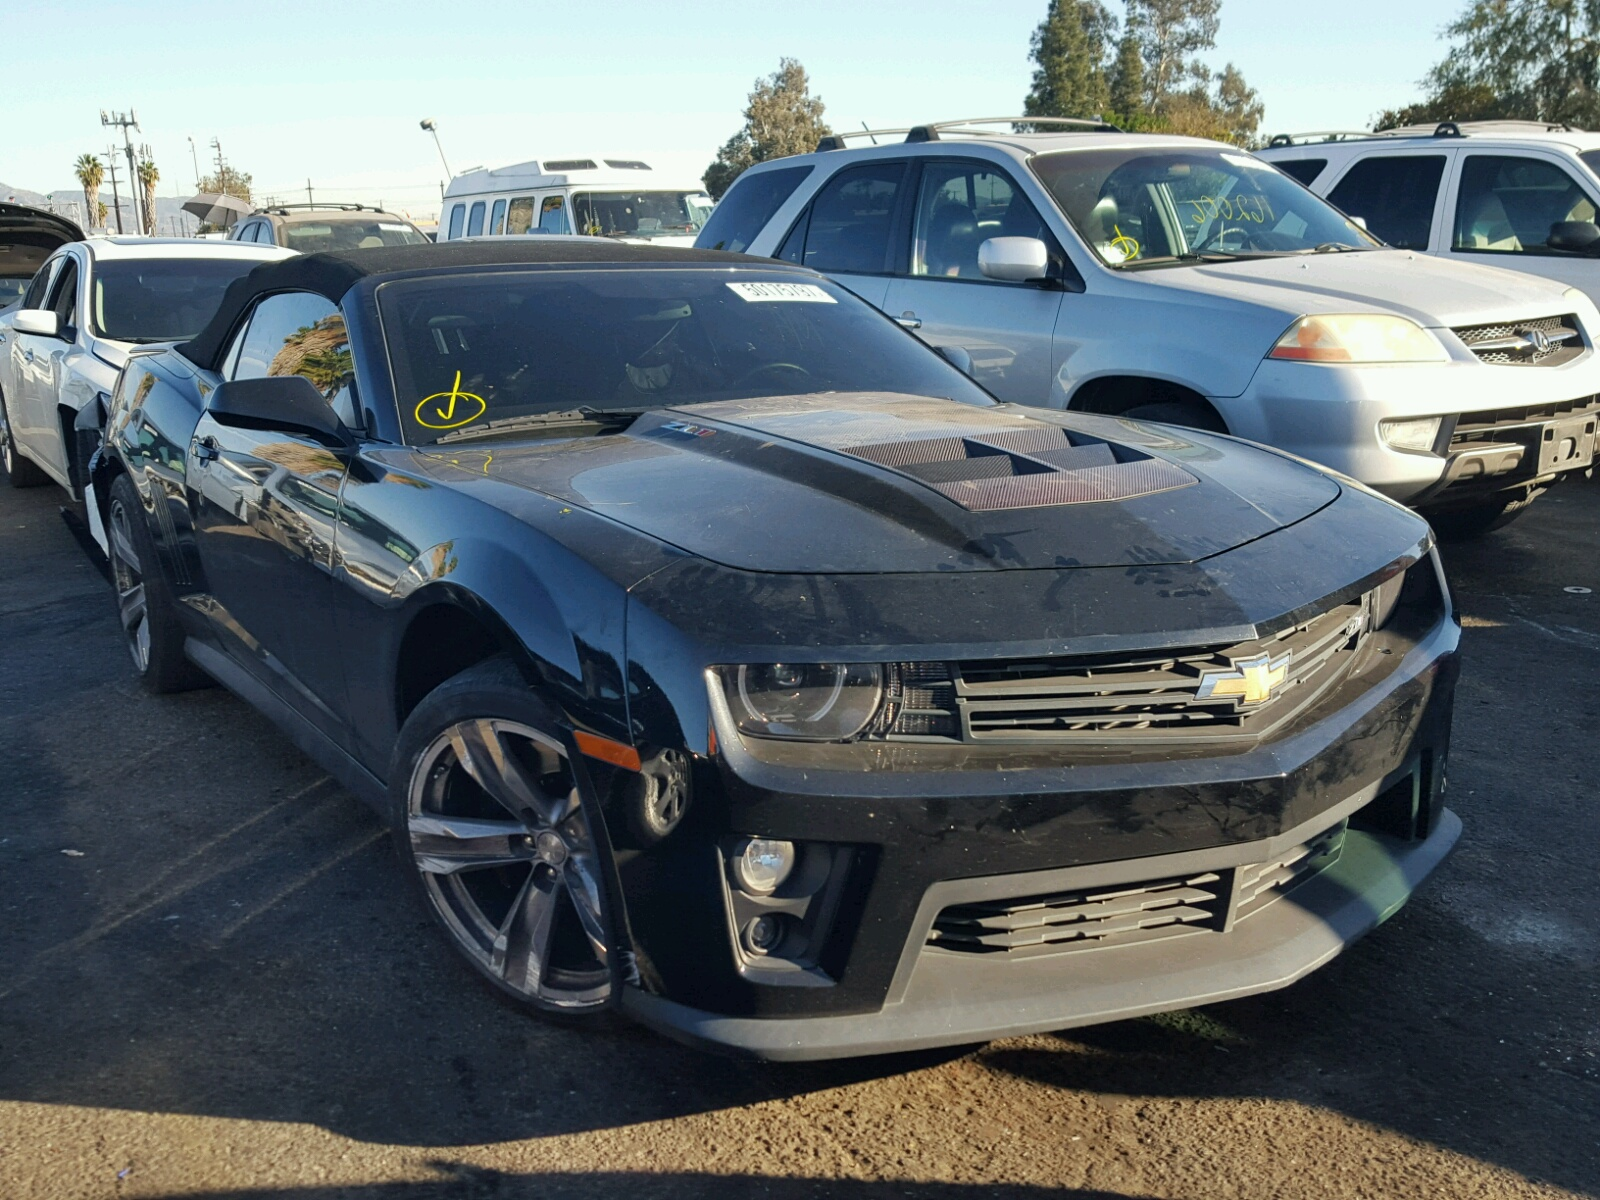 2013 Chevrolet Camaro ZL1 for sale at Copart Van Nuys CA Lot